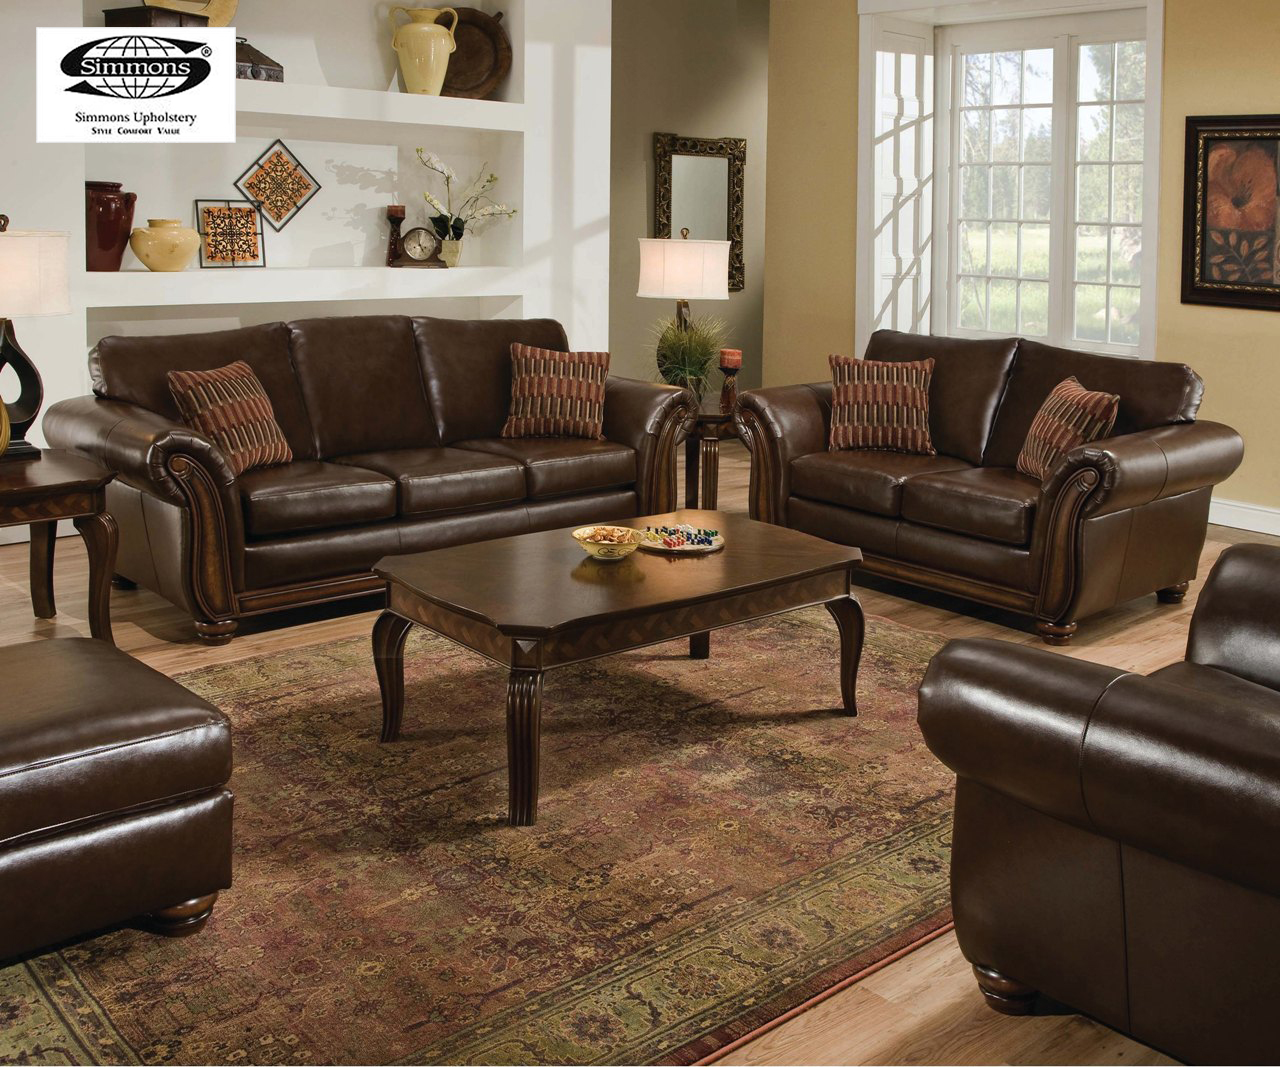 Santa monica traditional bonded leather living room for Traditional living room furniture